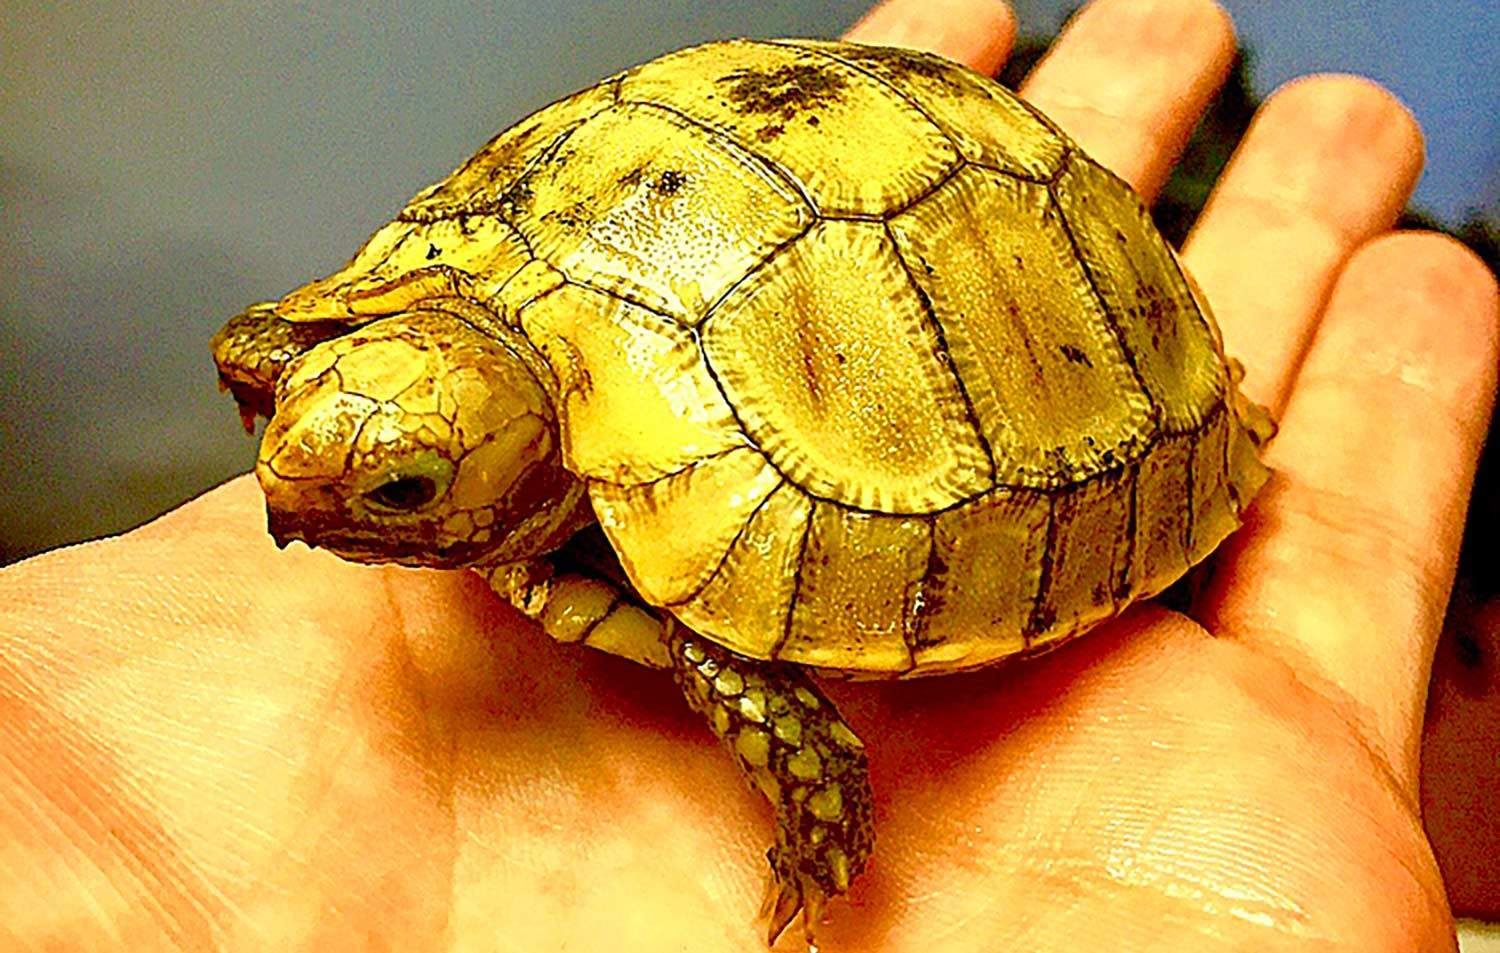 Elongated Tortoise For Sale Baby Elongated Tortoises For